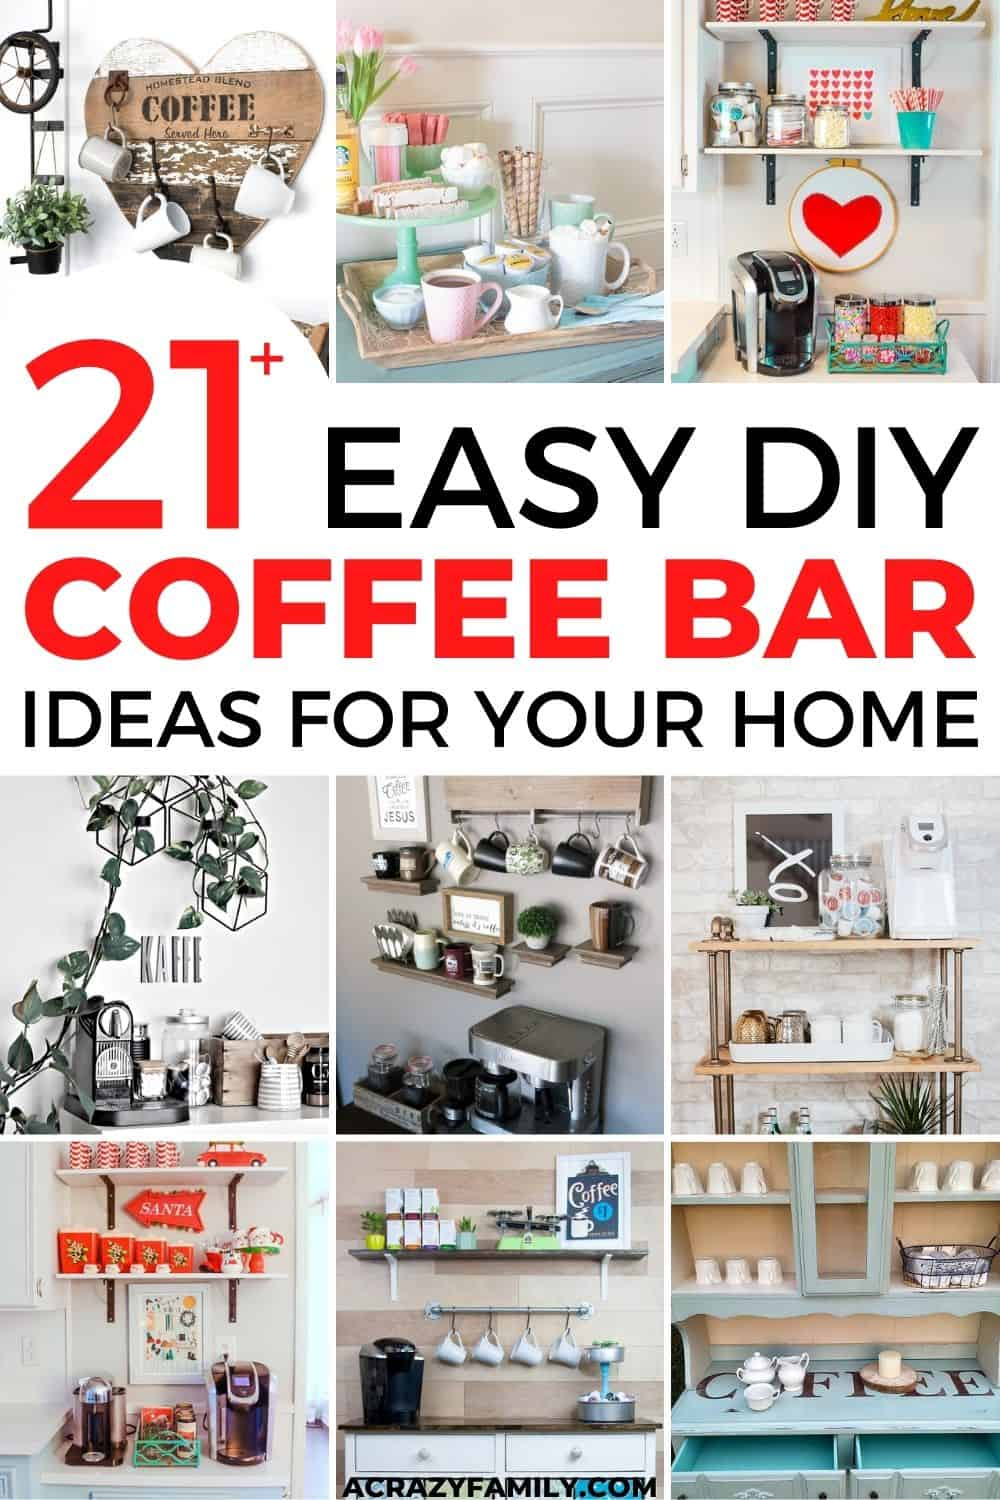 21+ Stylish DIY Coffee Bars to Add to Your Home